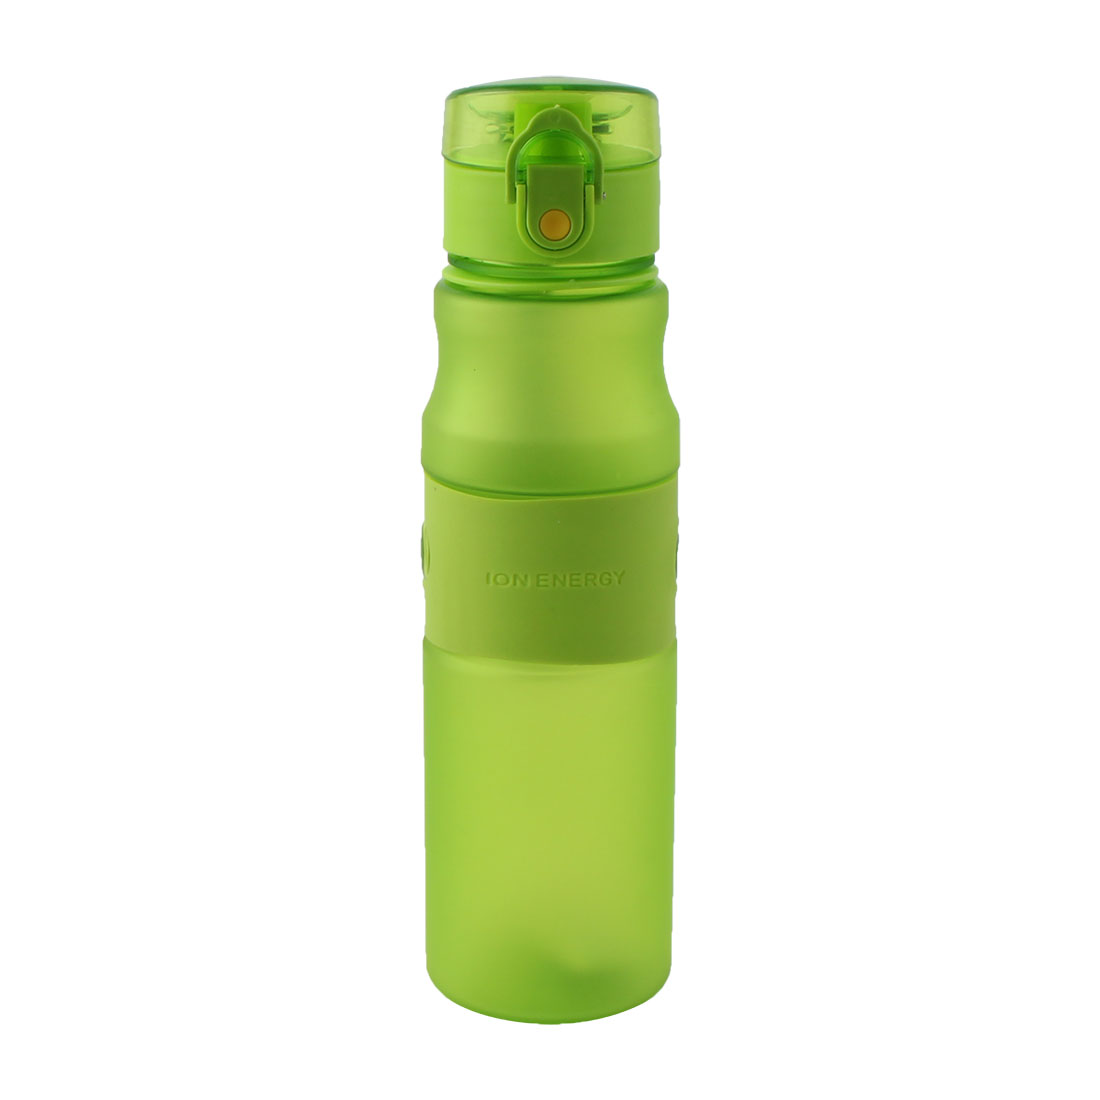 Plastic Portable Frosted Tea Cup Sport Drinking Water Bottle Mug Camping Kettle Green 700ml